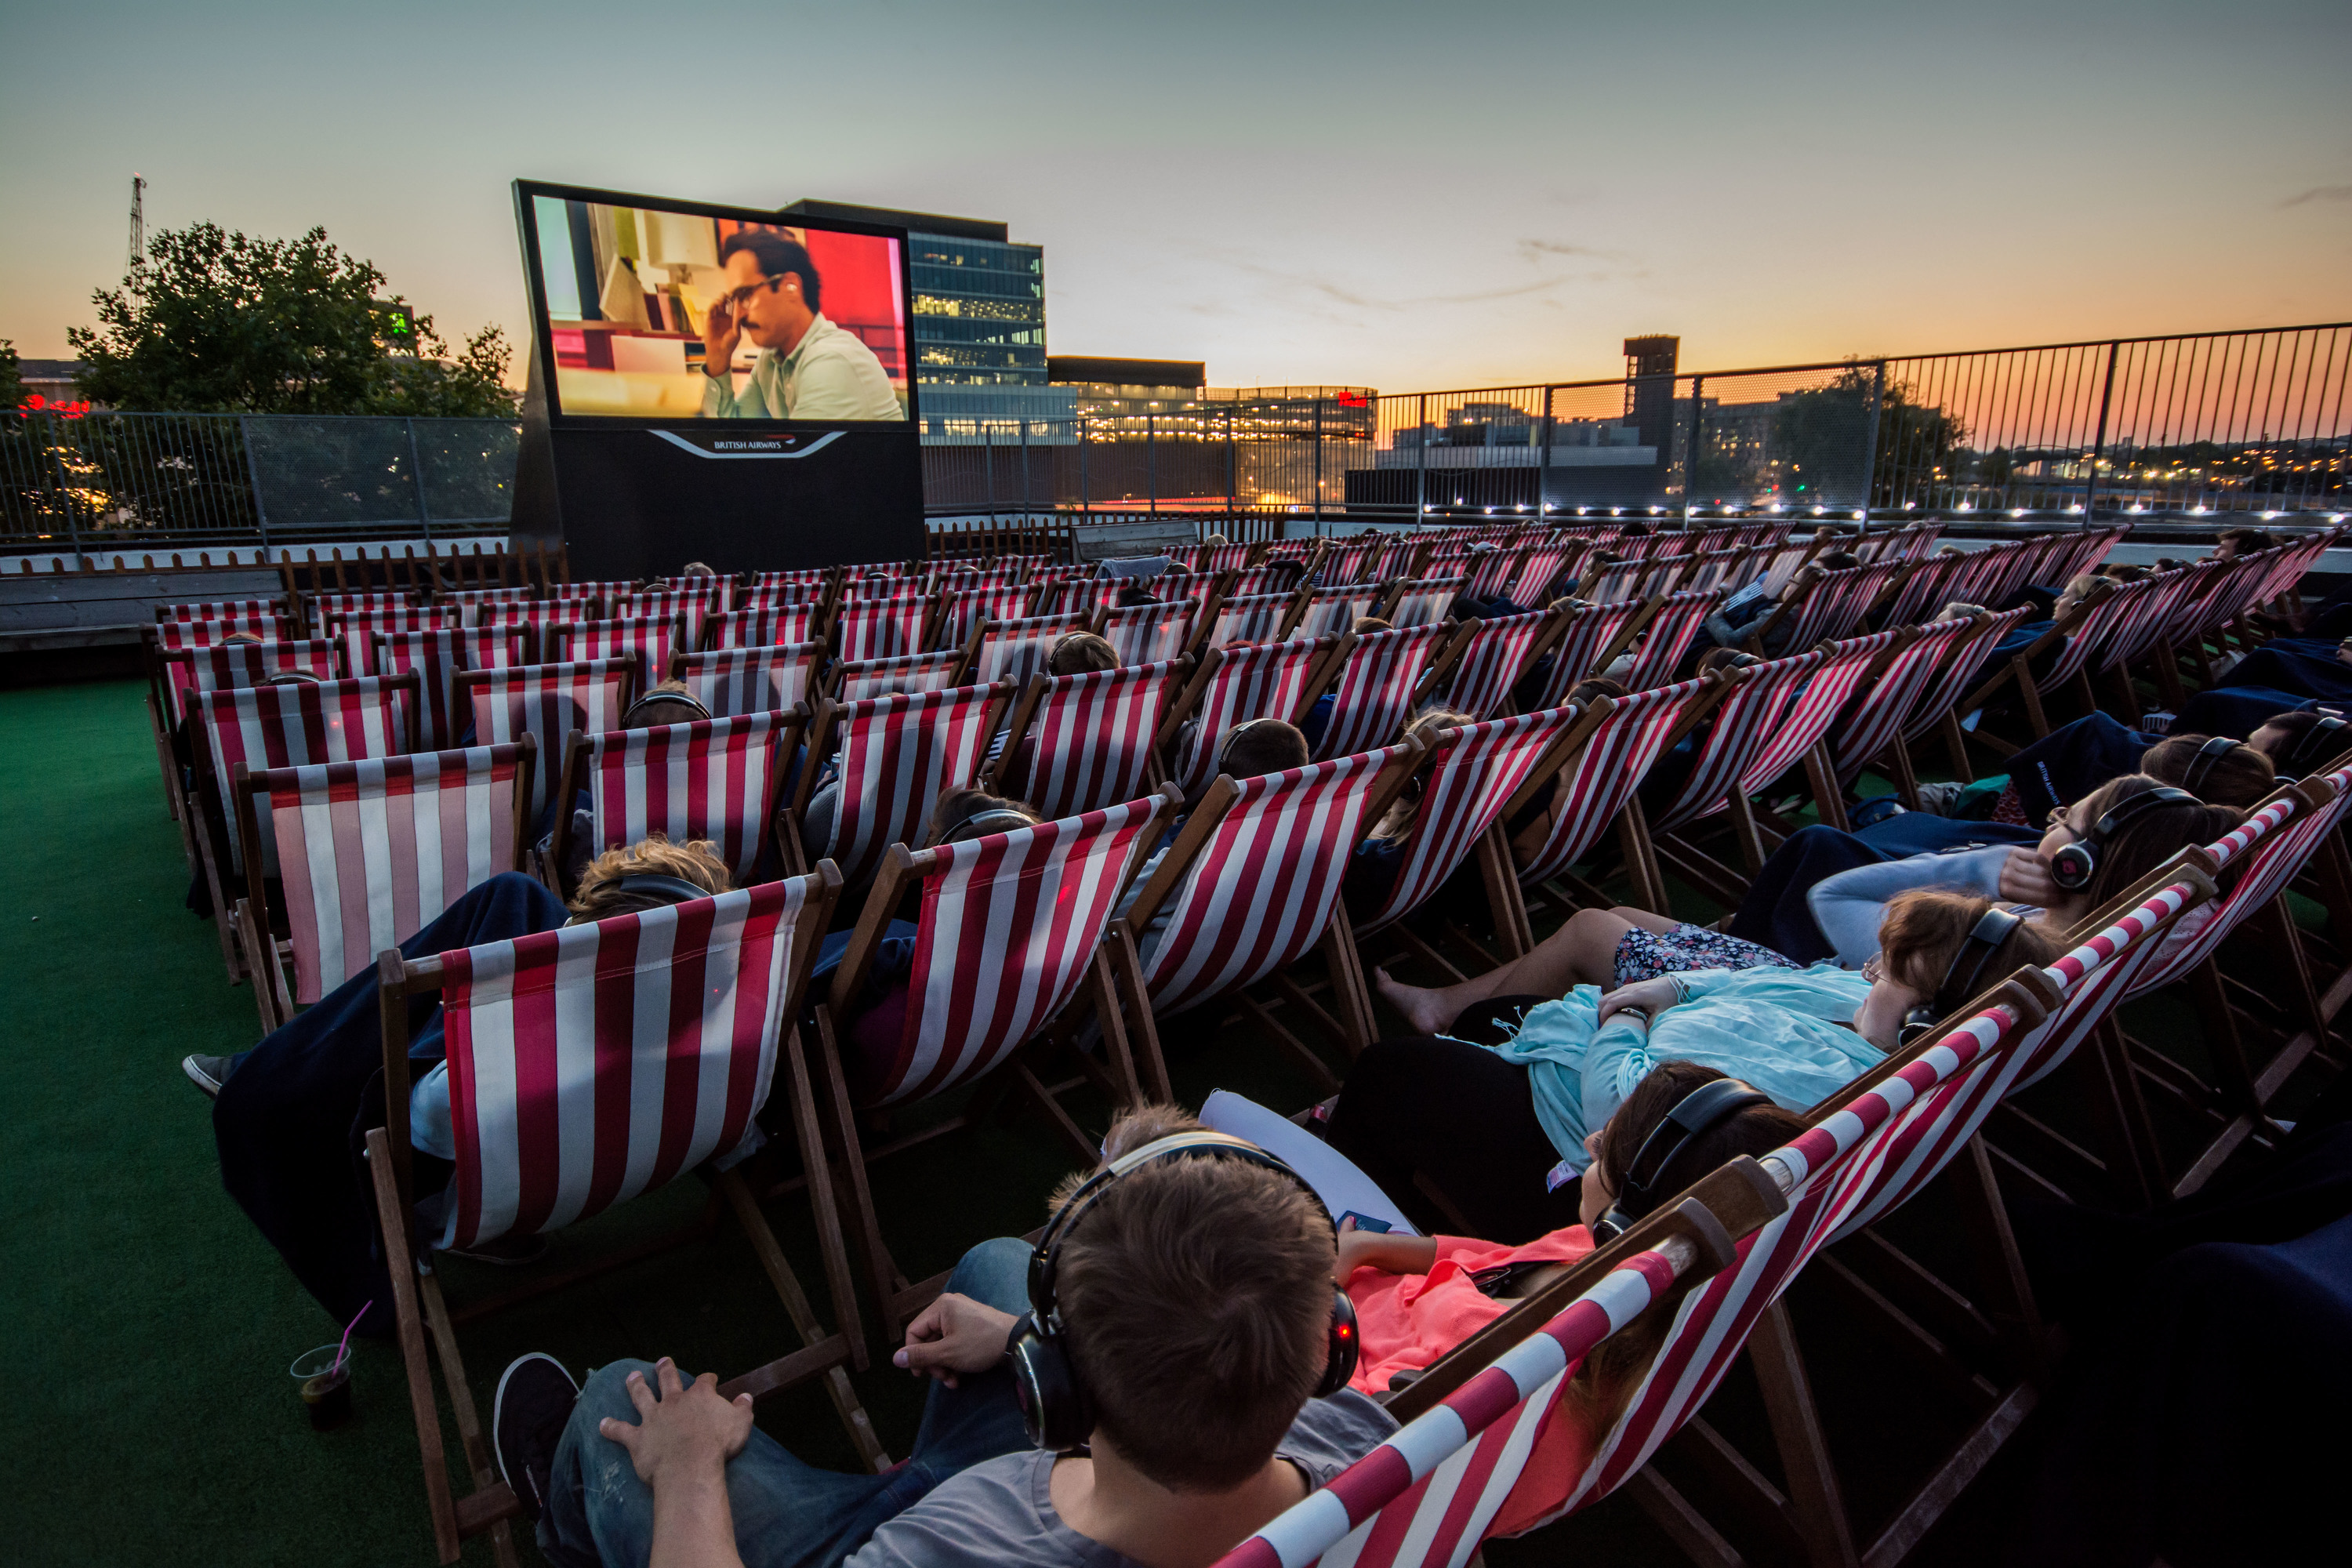 Movies in the park and summer outdoor screenings in NYC